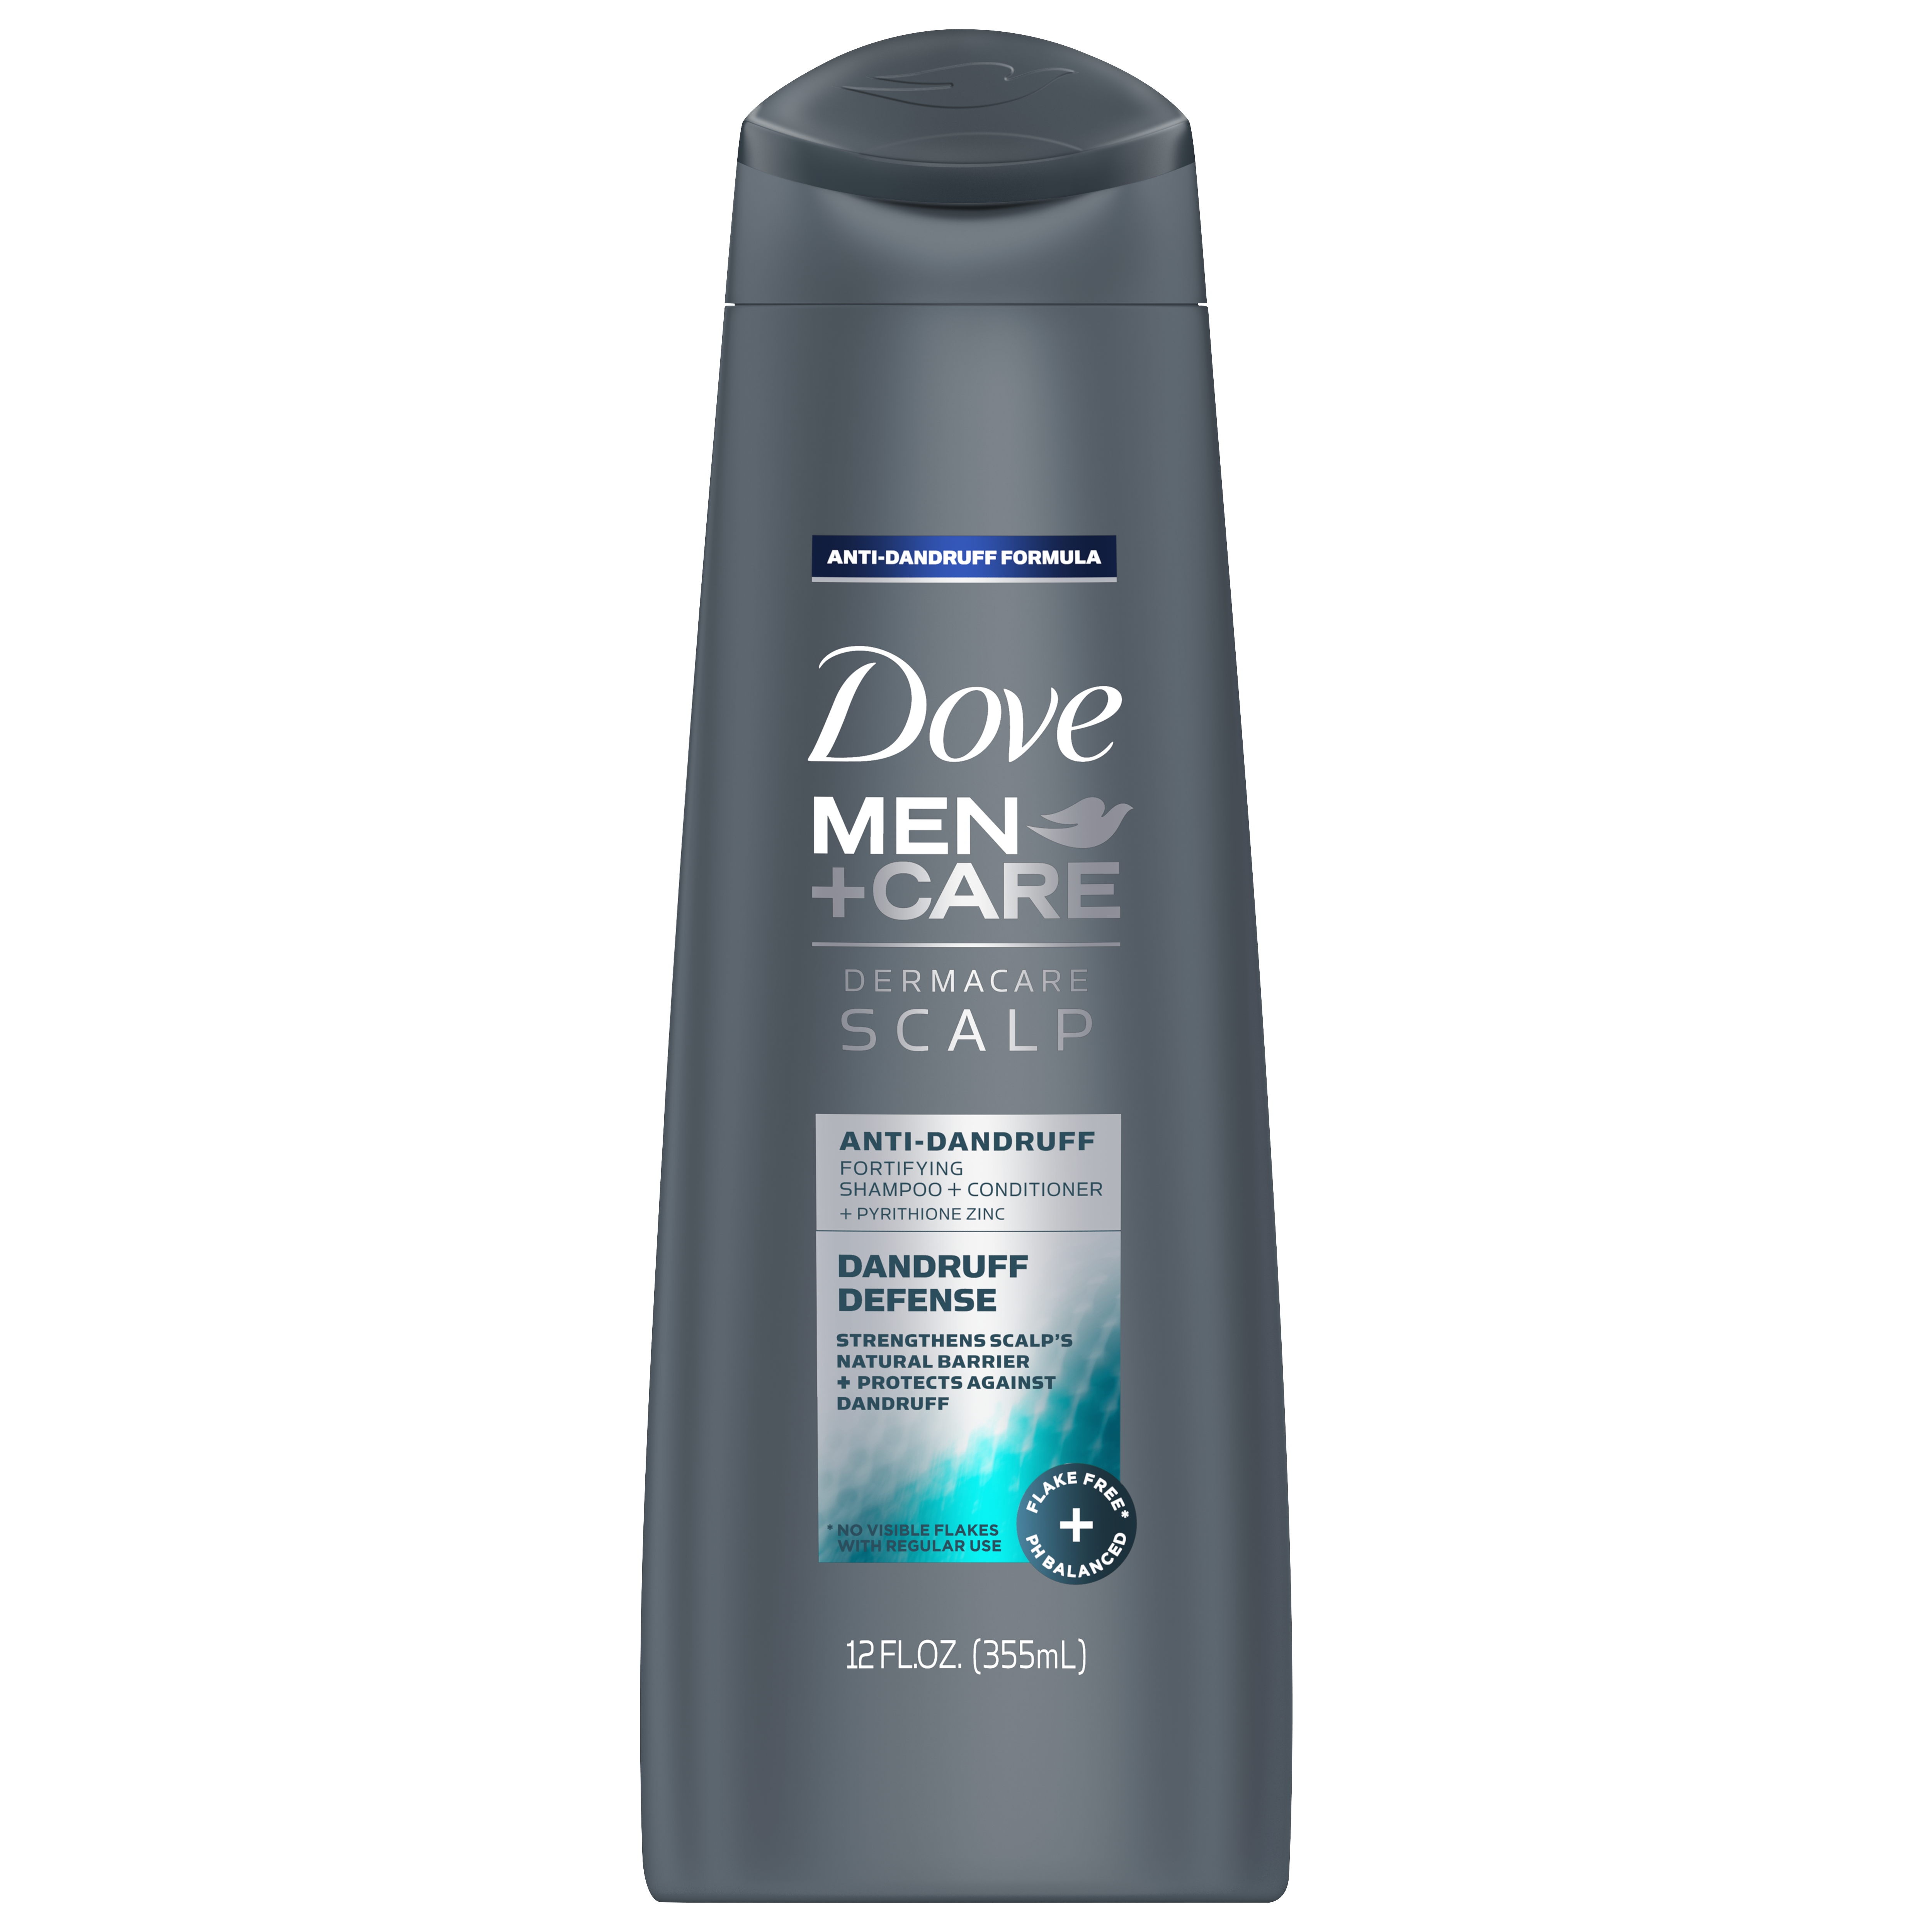 Dove Men+Care Clean Comfort 2-in-1 Dandruff Defense Shampoo and Conditioner